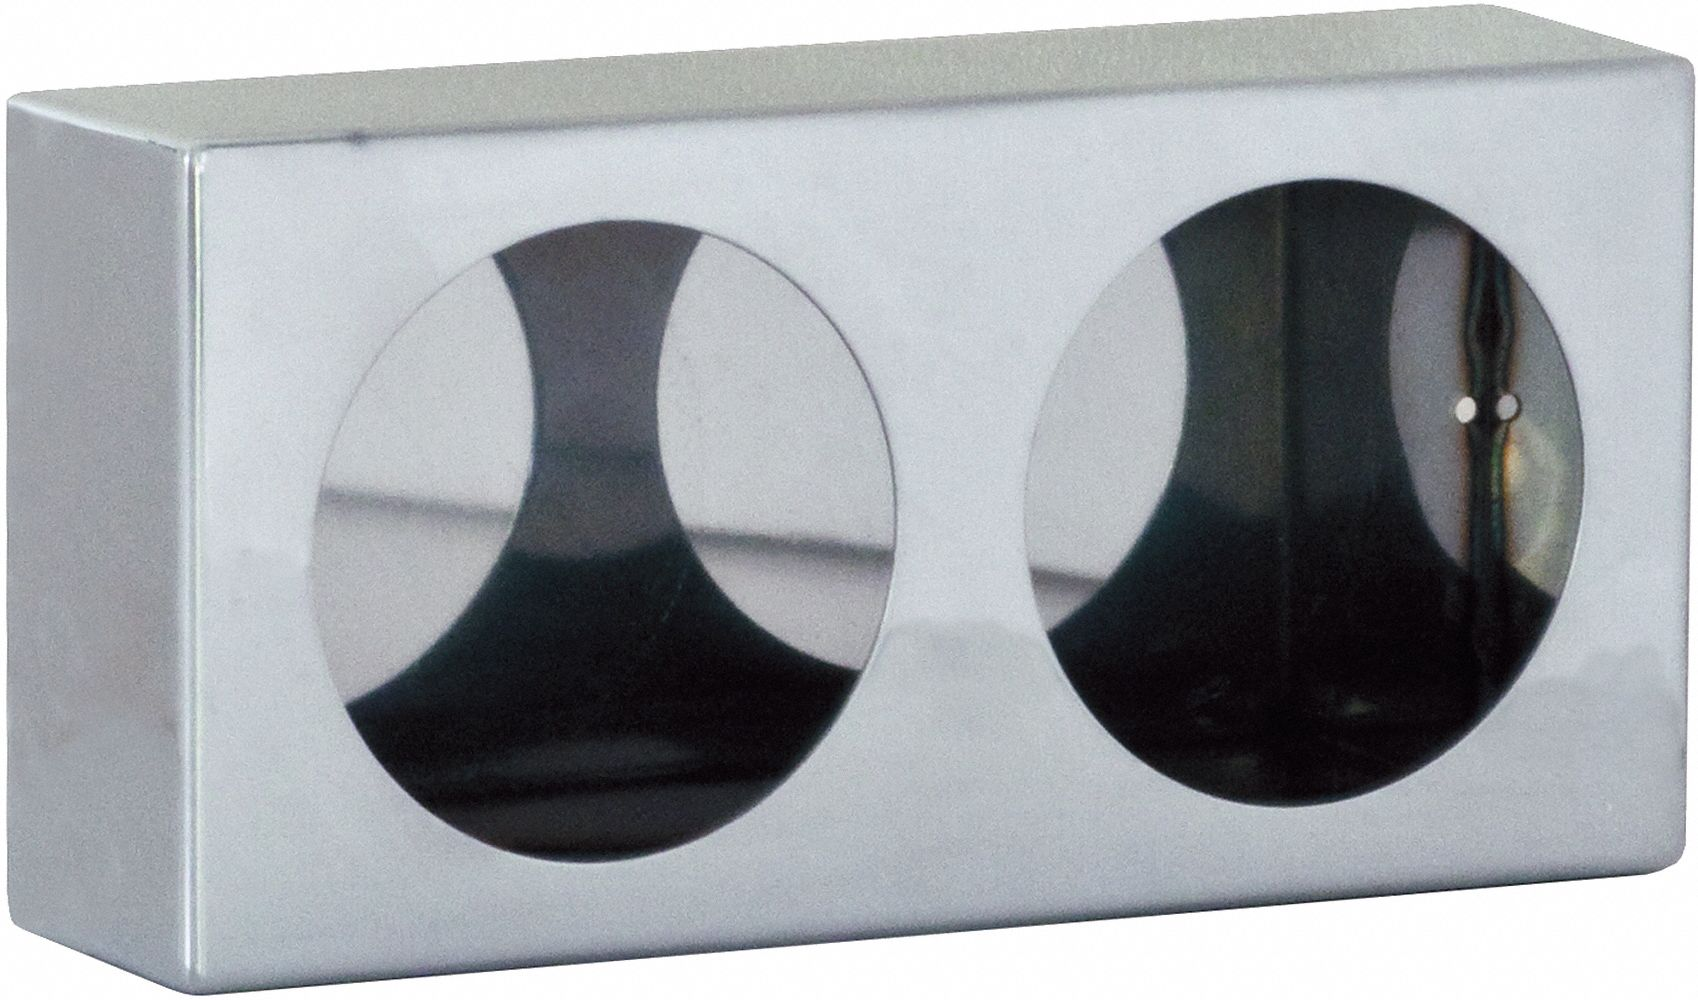 BUYERS PRODUCTS LB6183ALDT Triple Round Light Box,6x18x3 In.,Alum